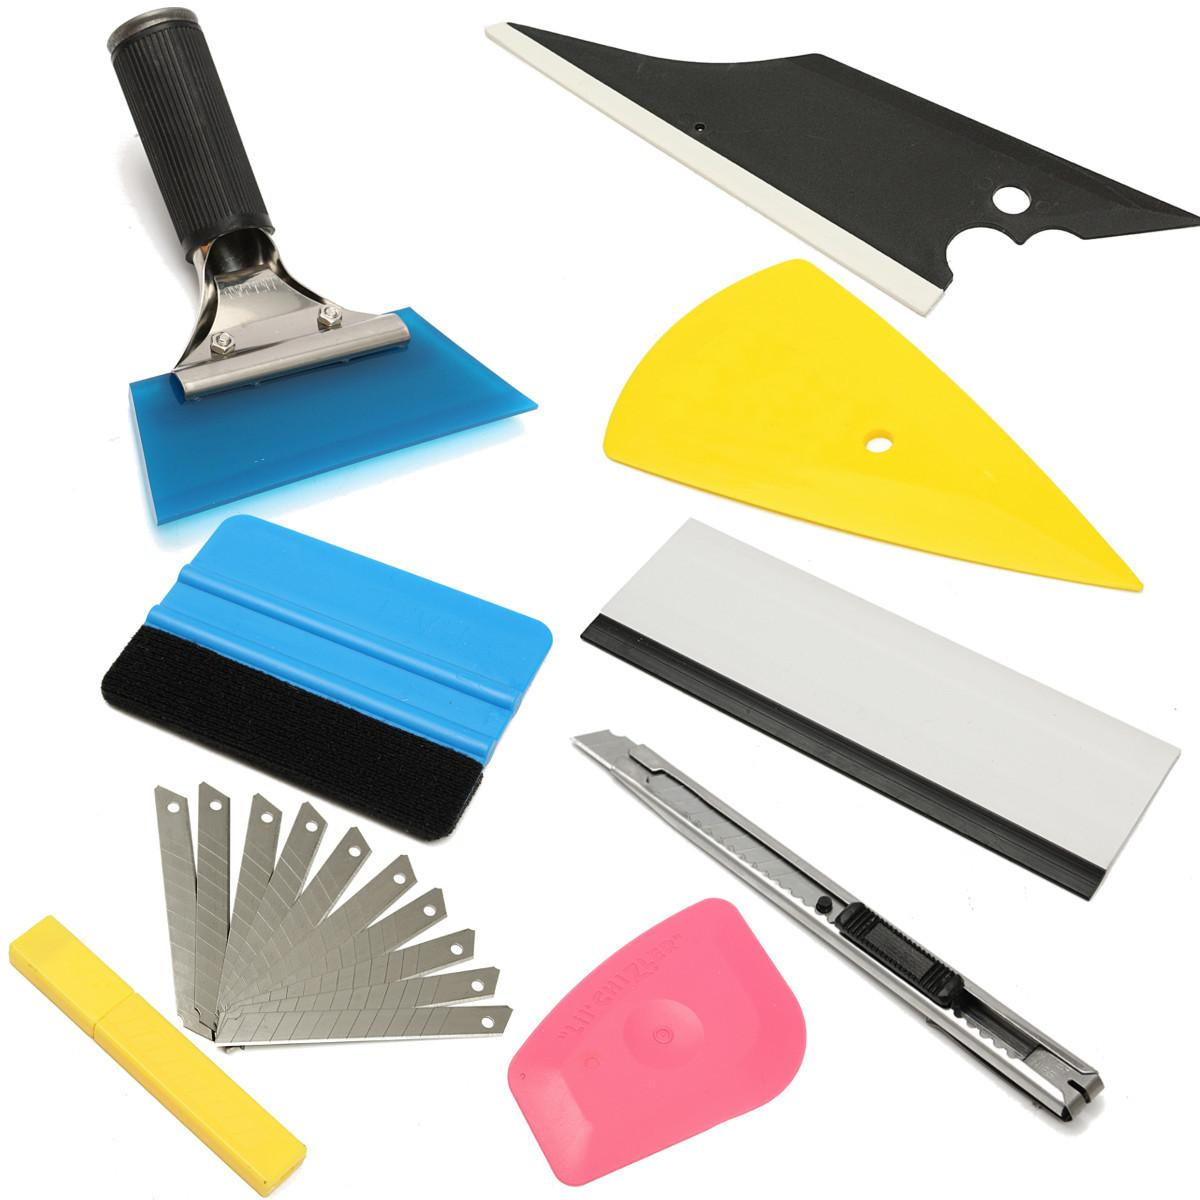 GPS Useful 8 Peices Auto Squeegee Scraper Applicator Car Window Tinting Installation Tools Kit